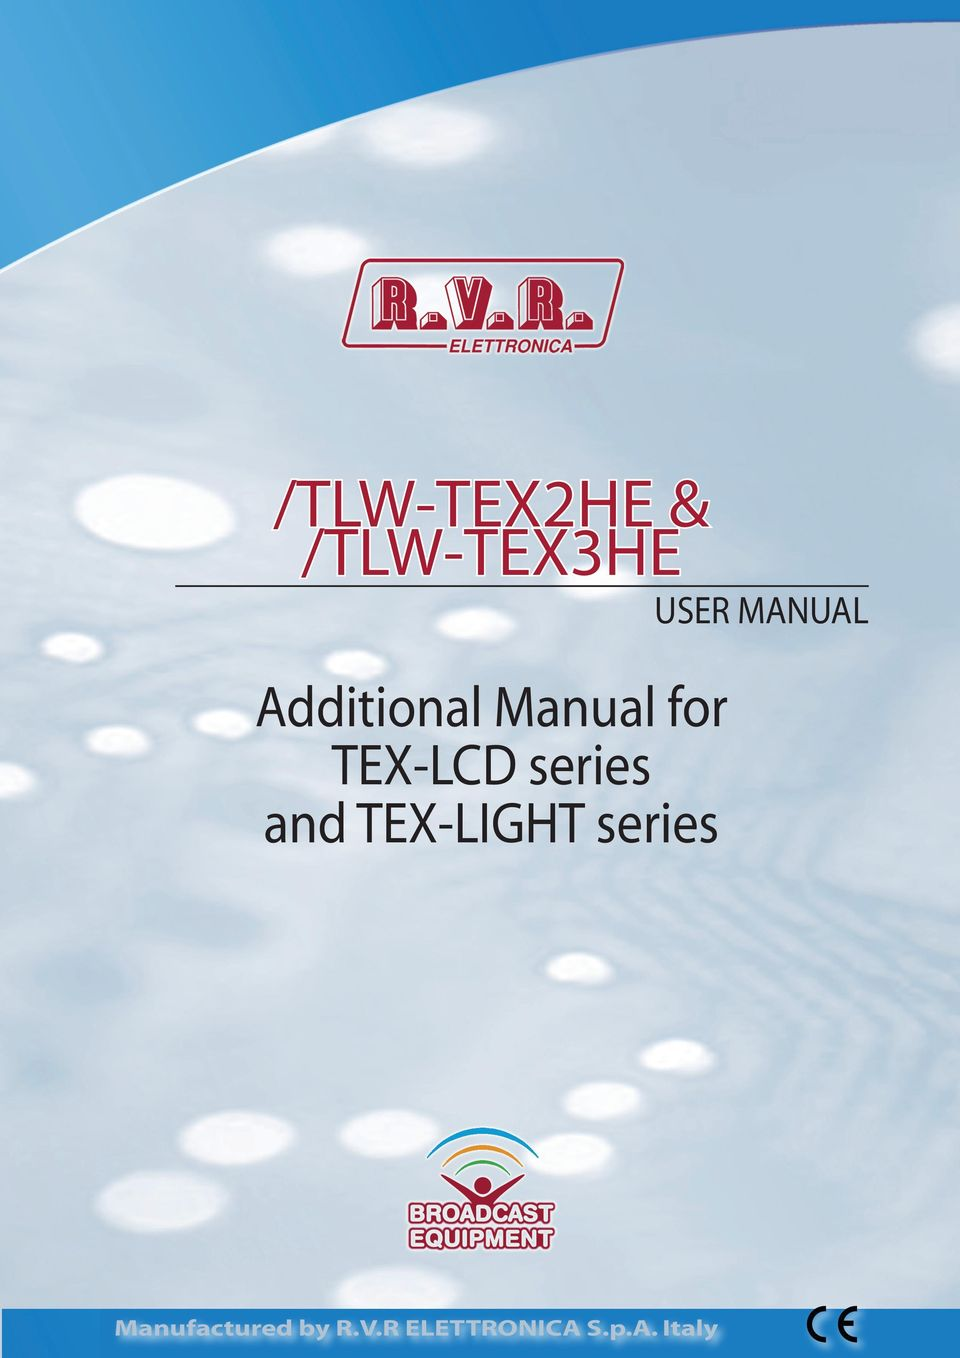 TEX-LCD series and TEX-LIGHT series